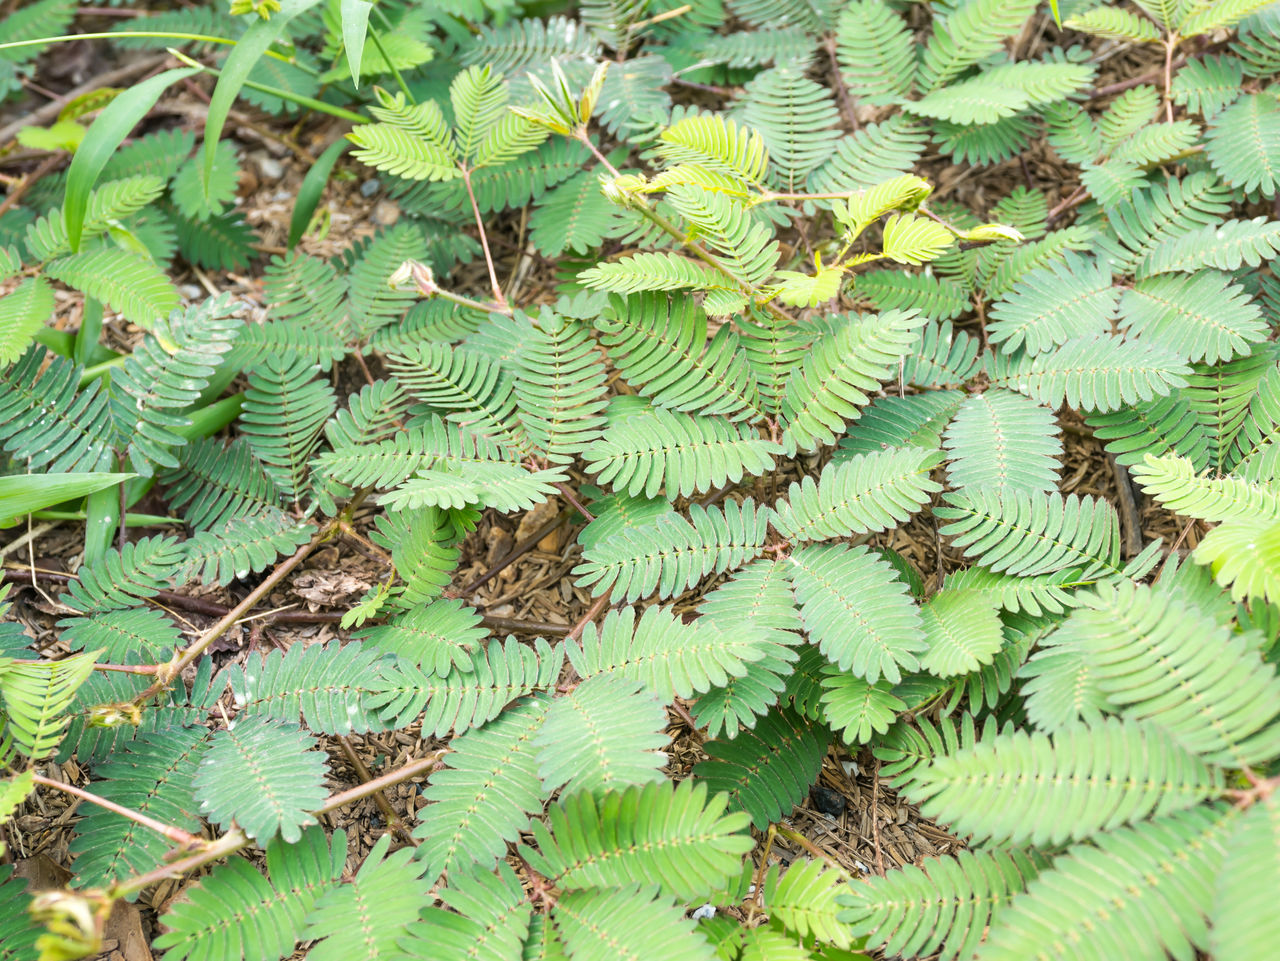 growth, green color, plant, leaf, nature, day, high angle view, outdoors, no people, fern, close-up, beauty in nature, freshness, fragility